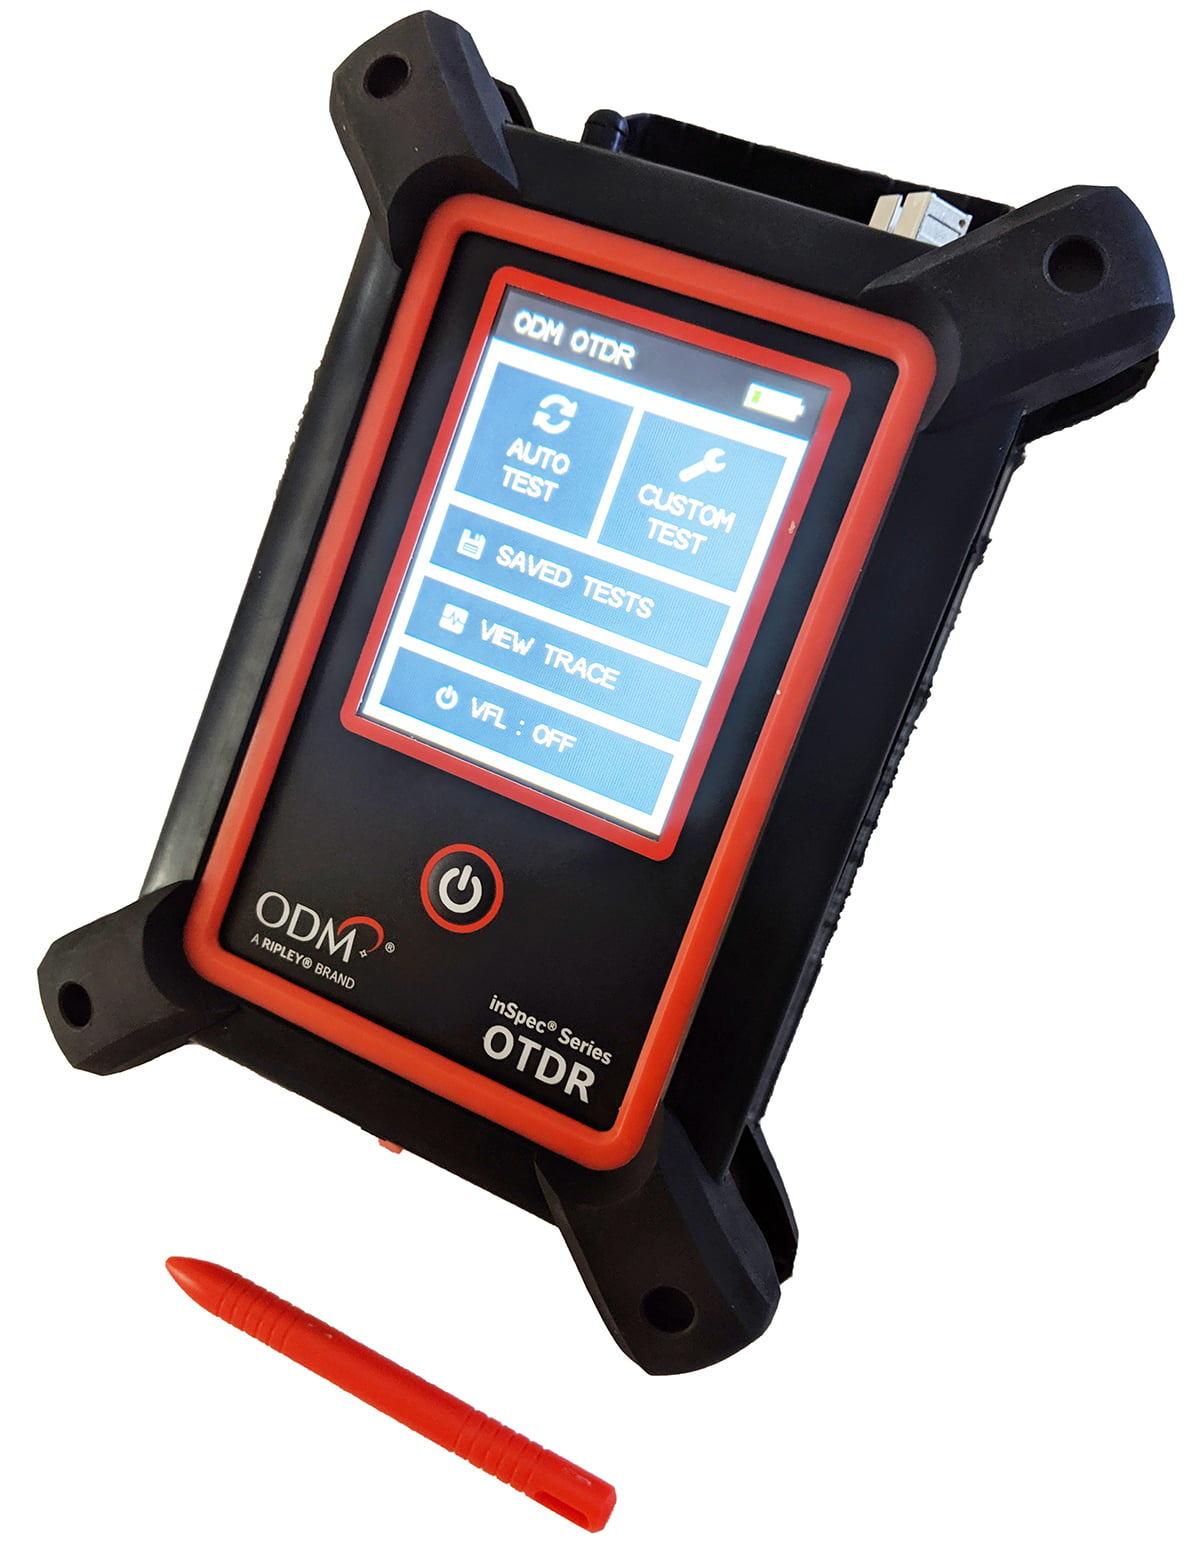 New ODM® OTDR Rugged and Compact Design Weighs Less Than 1.5 Lbs